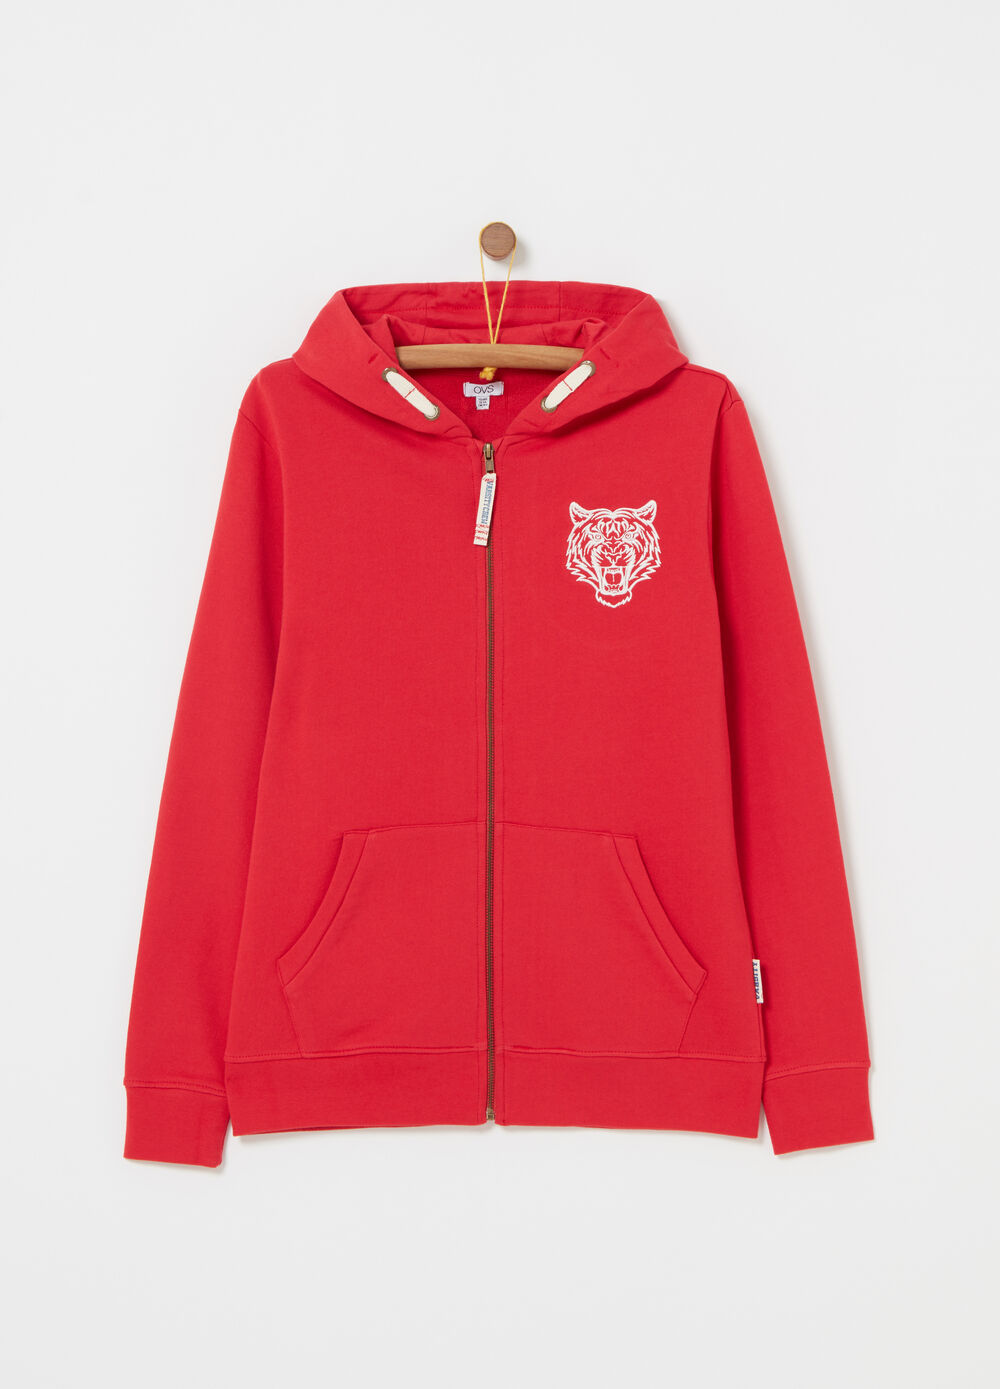 Full-zip sweatshirt with tiger embroidery and ribbing